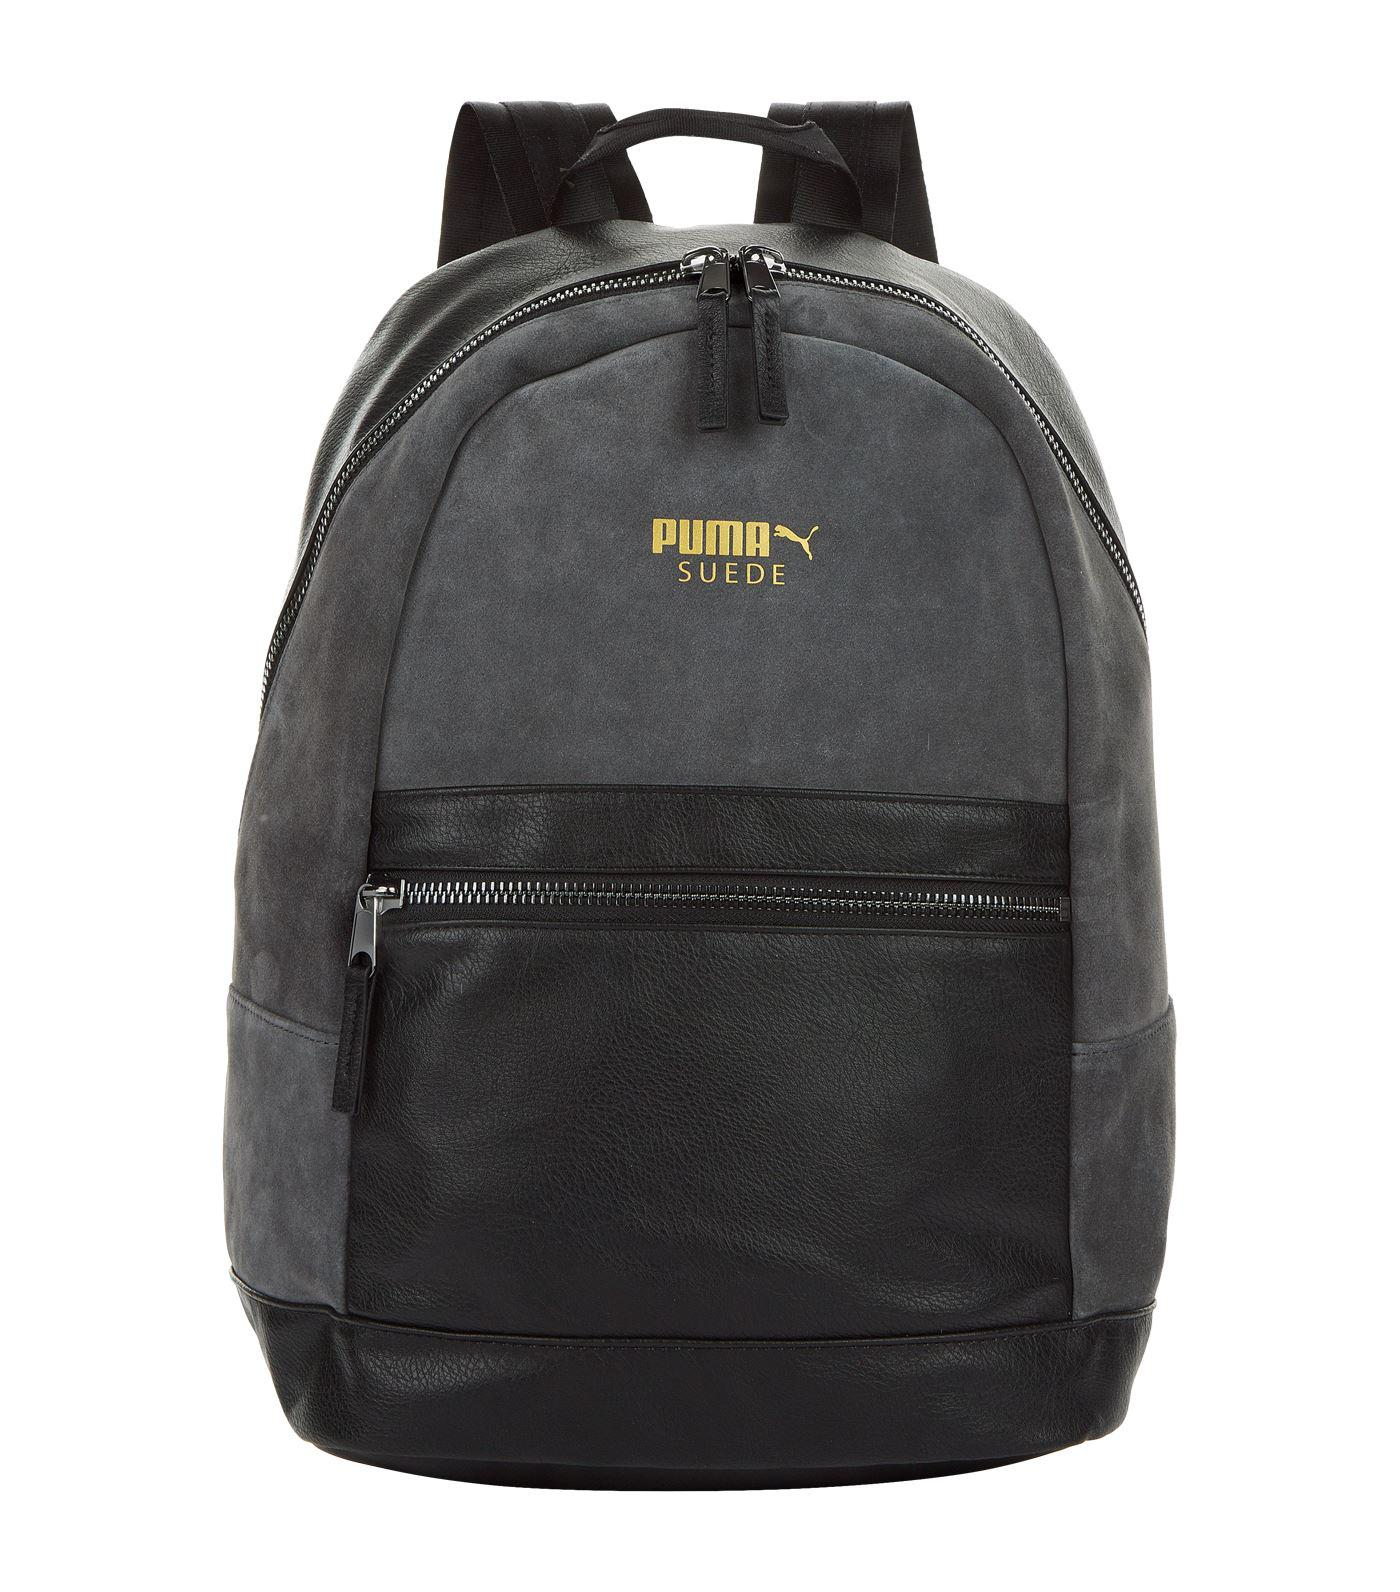 Details about Puma Prime Premium Archive Suede Womens Backpack Bag Black 075418 01 A4A